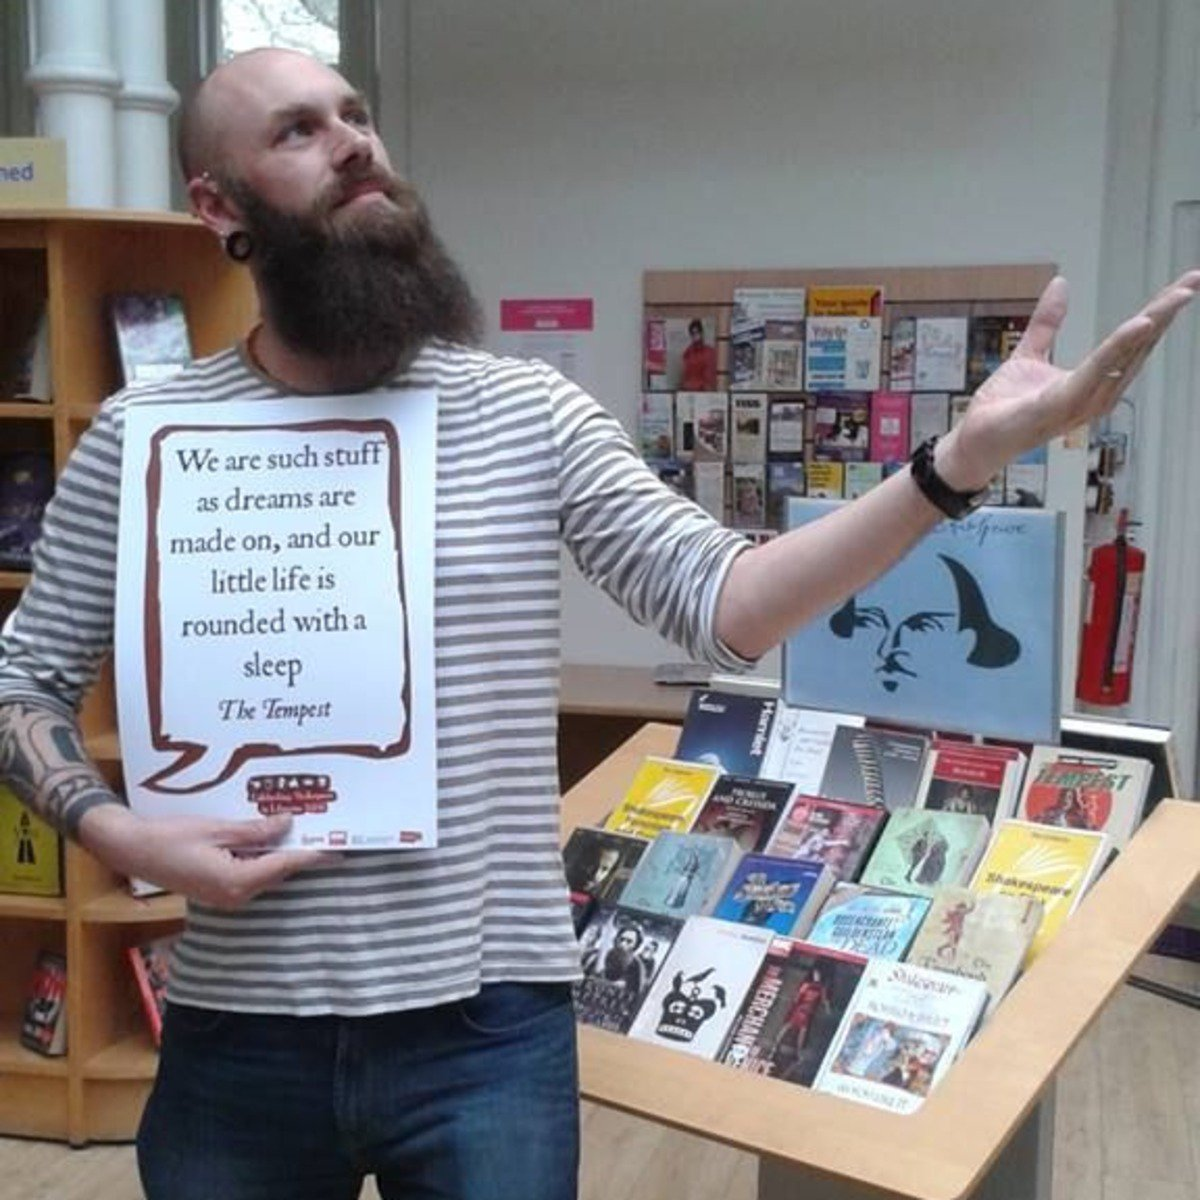 Quoting from 'The Tempest' we have Jonas our reference manager returning as part of #shakespeare16 https://t.co/5BTWX86zJU